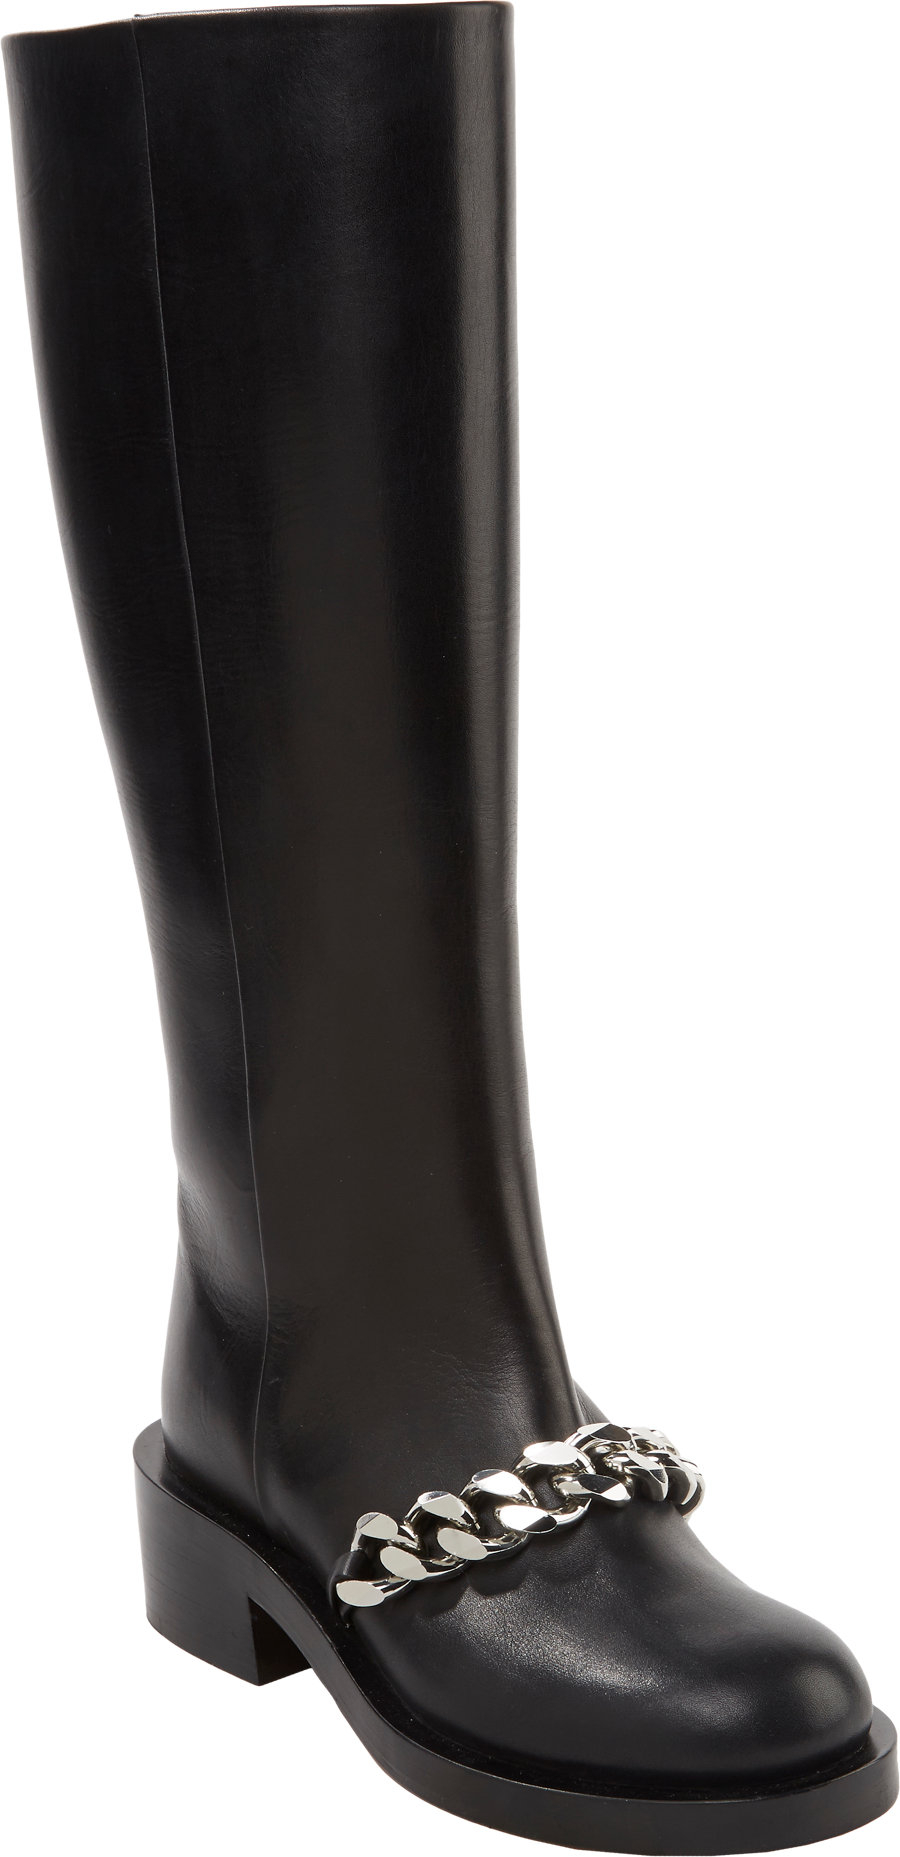 Givenchy Laurana Chain-link Knee Boots in Black | Lyst